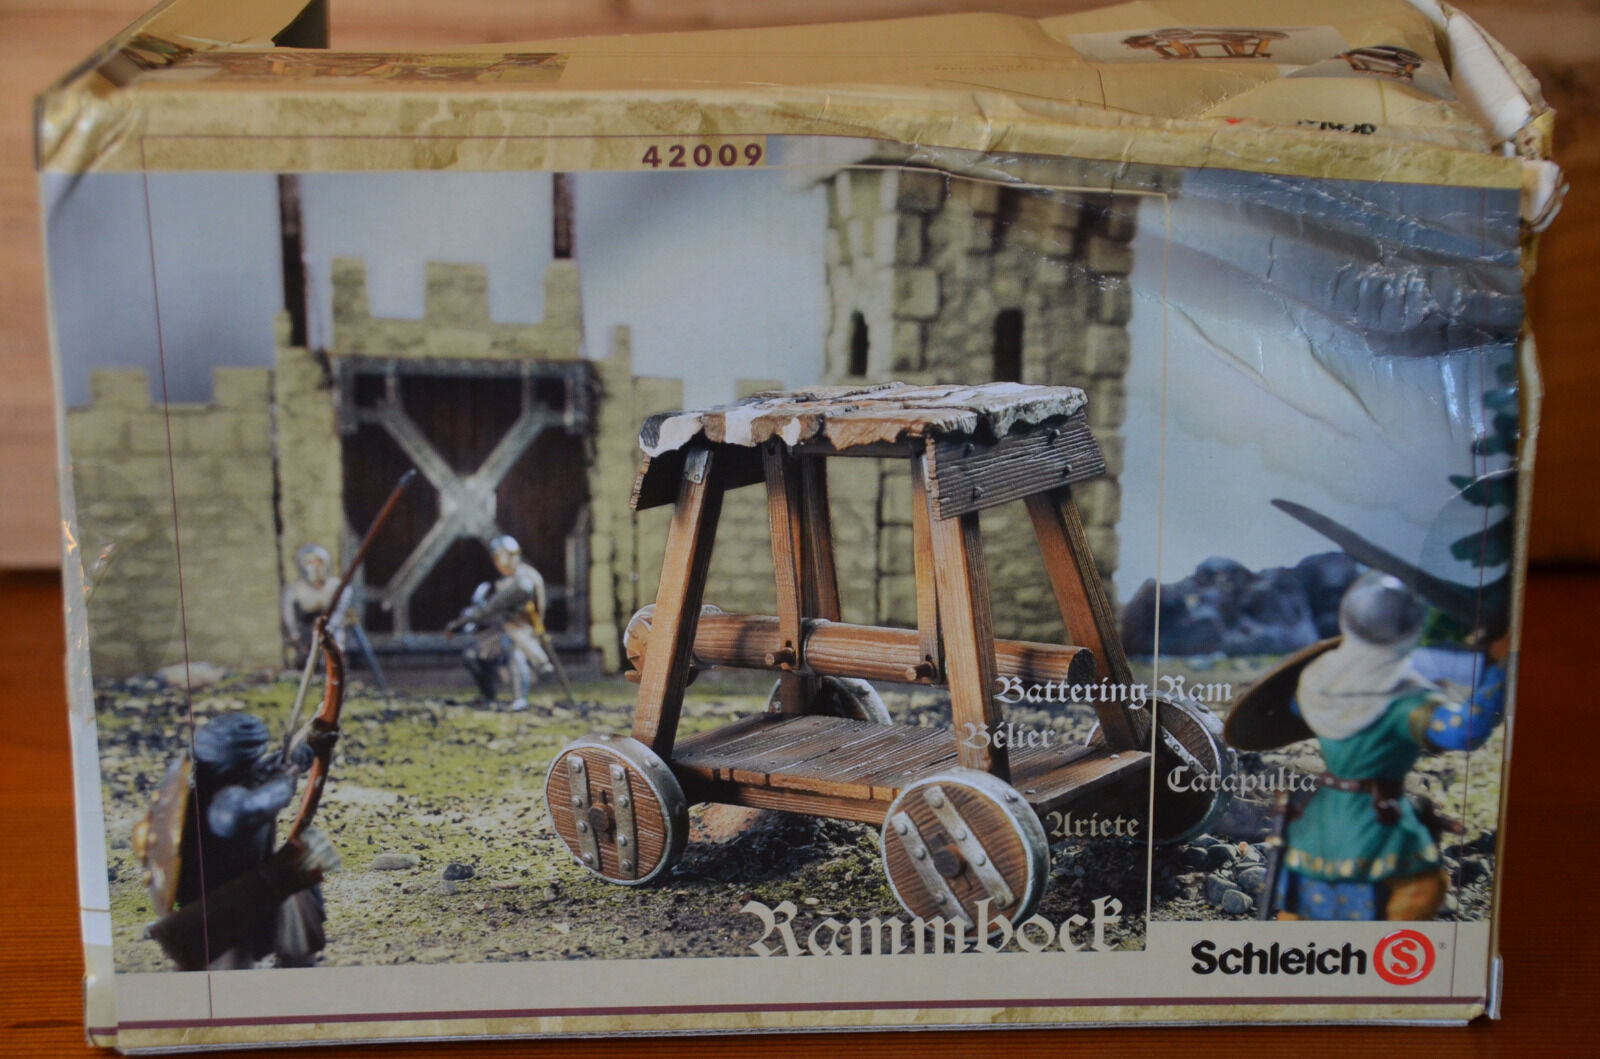 SCHLEICH 'Battering Ram' BOXED. BRAND NEW. World Of Knights.